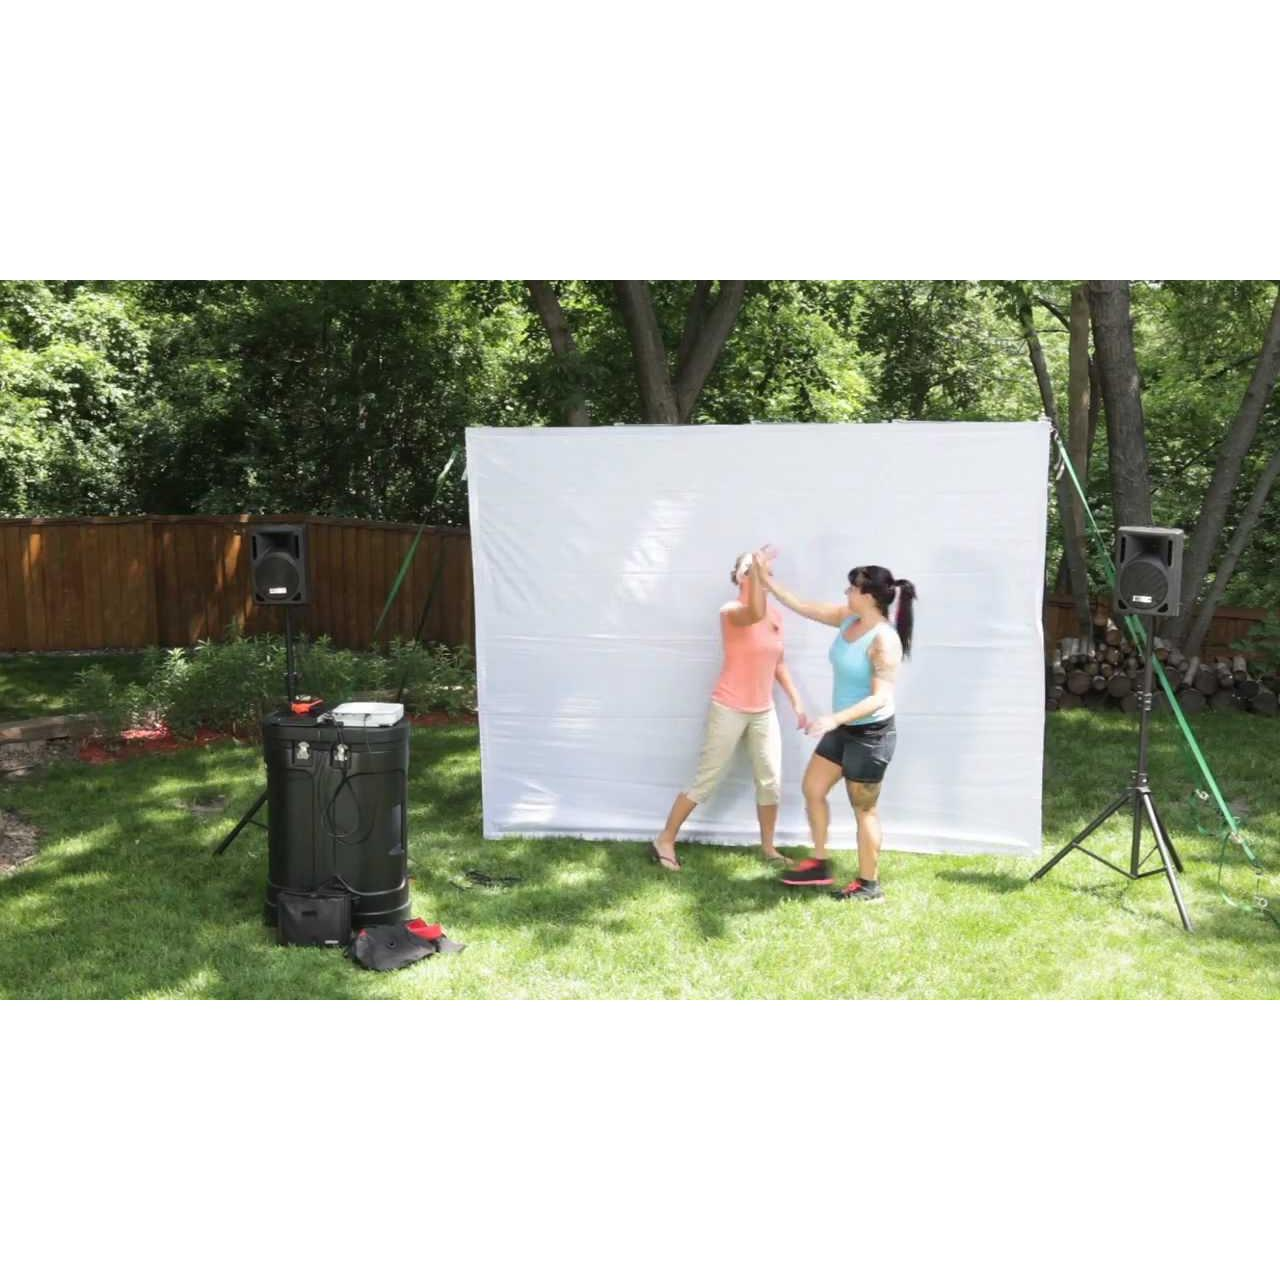 Backyard Theater Ideas backyard theater system - geeky gift ideas